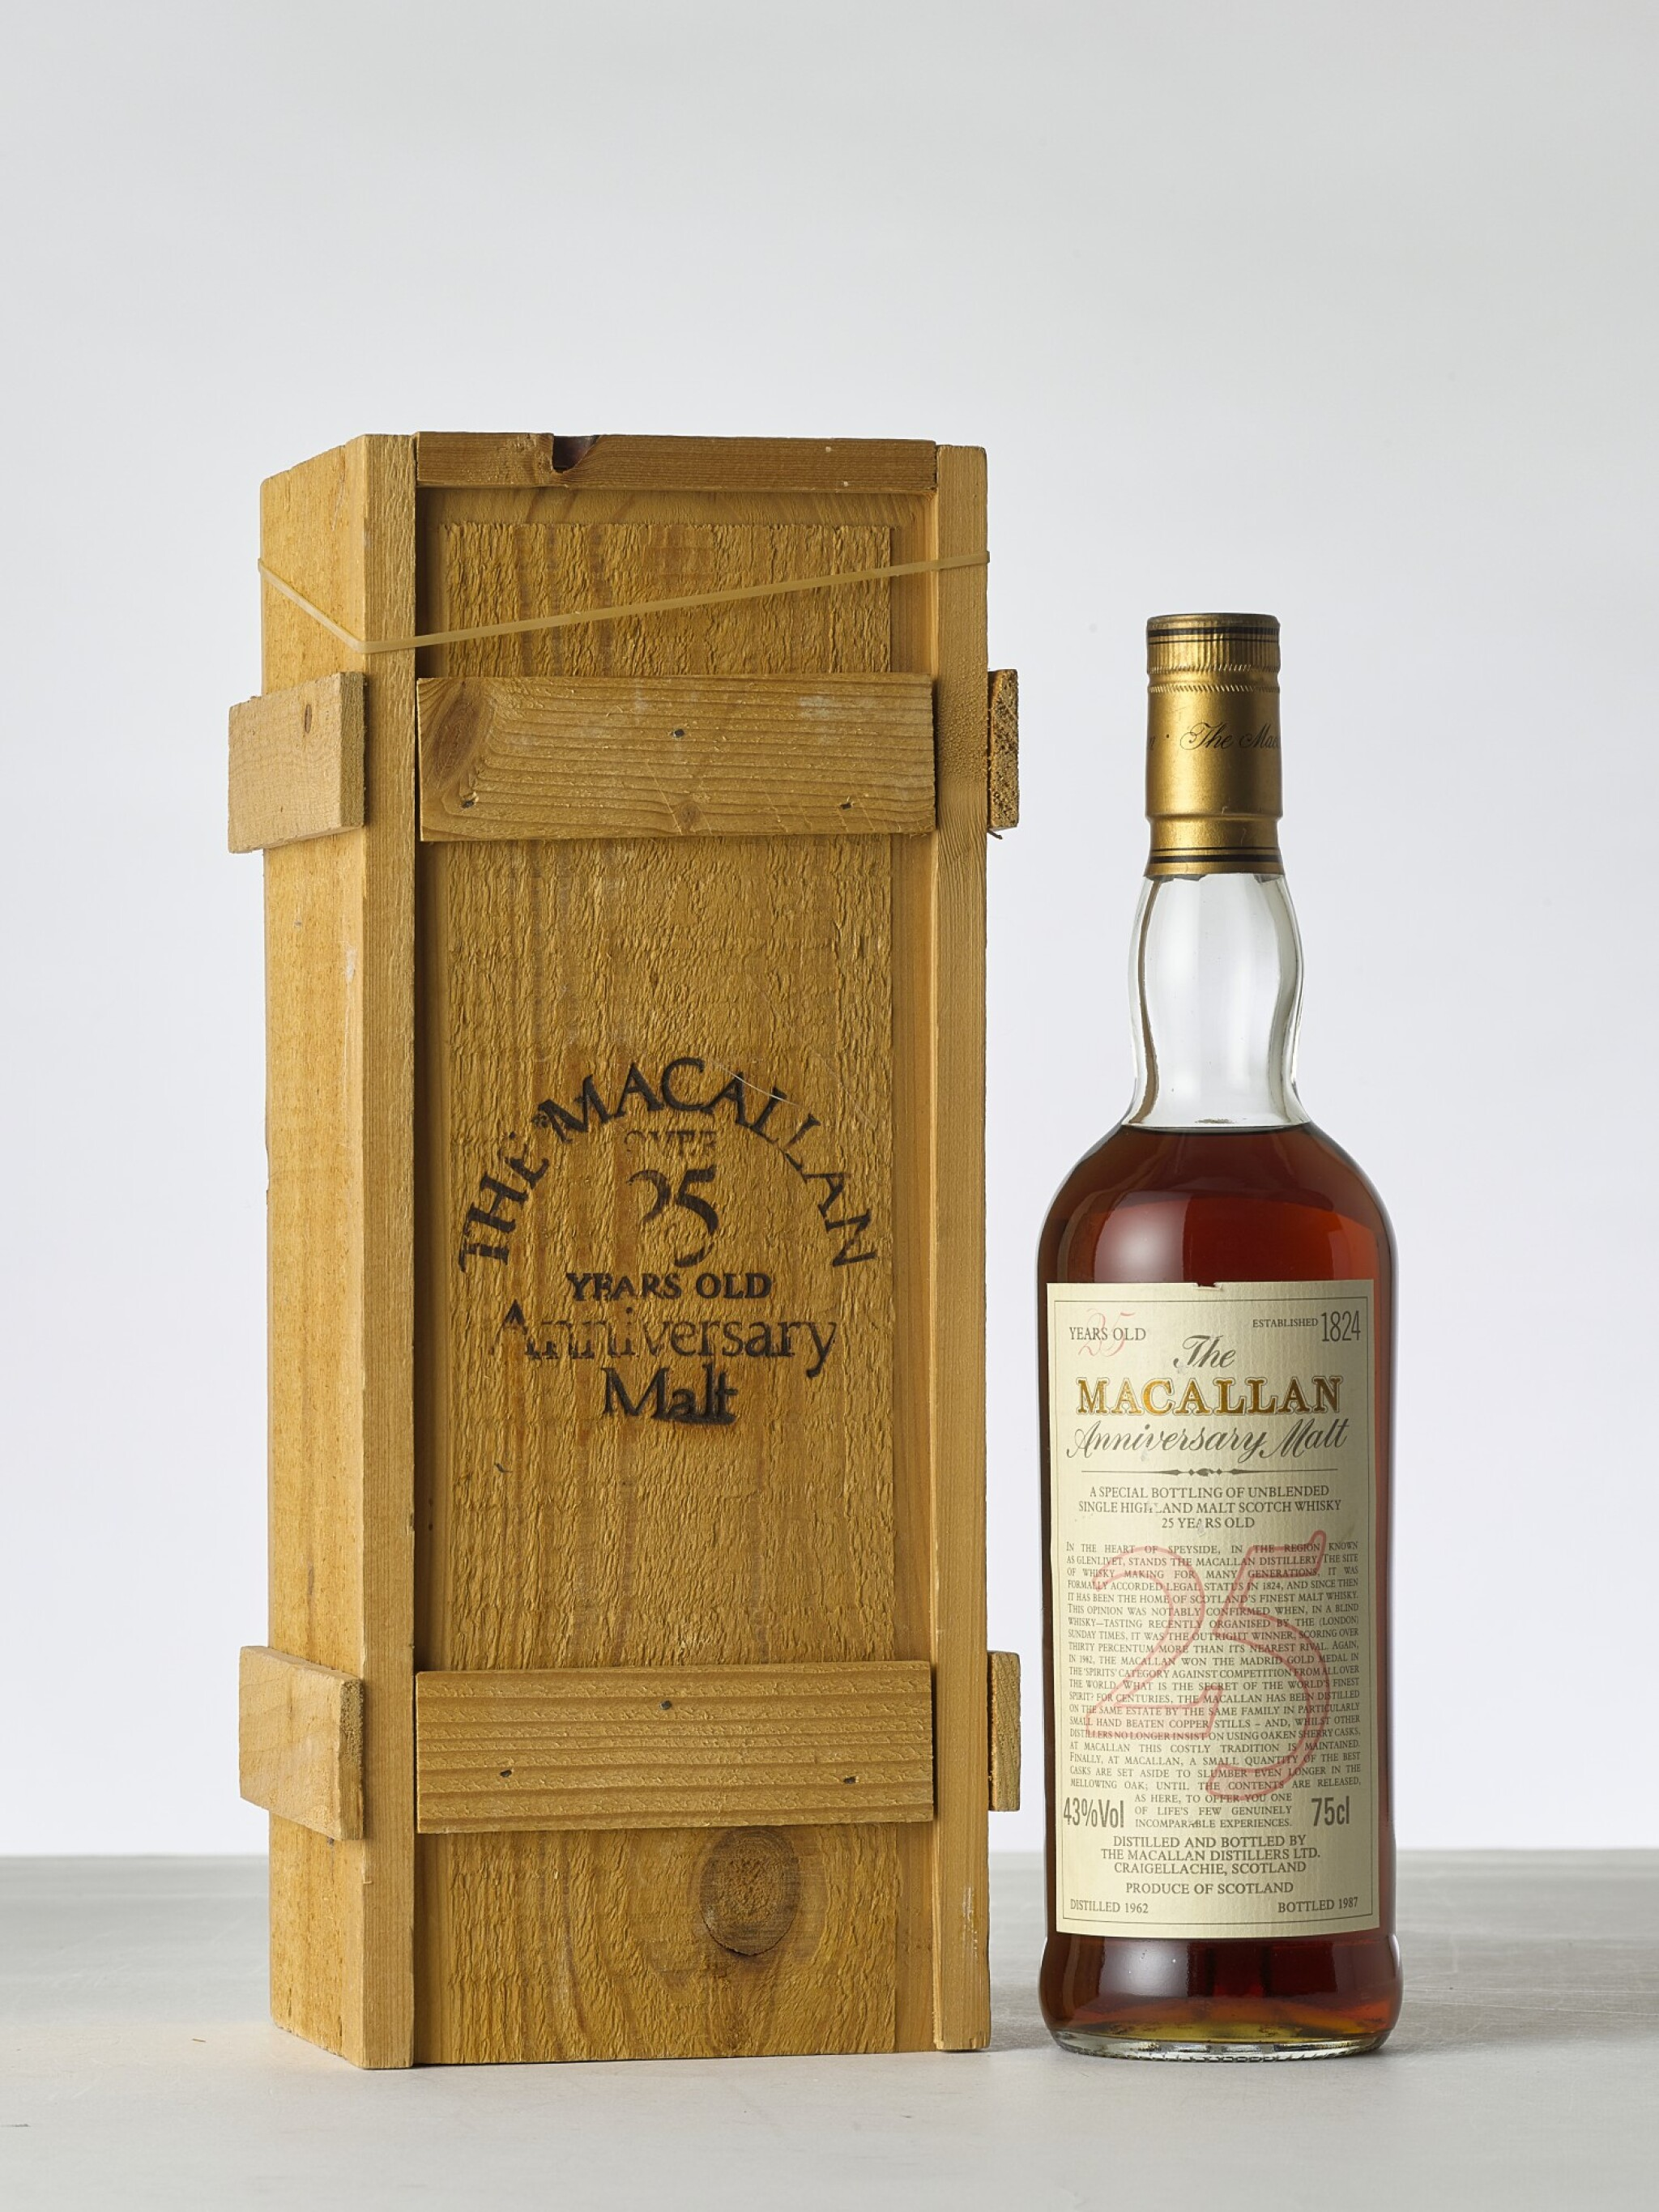 View 1 of Lot 2014. The Macallan 25 Year Old Anniversary Malt 43.0 abv 1962 (1 BT).